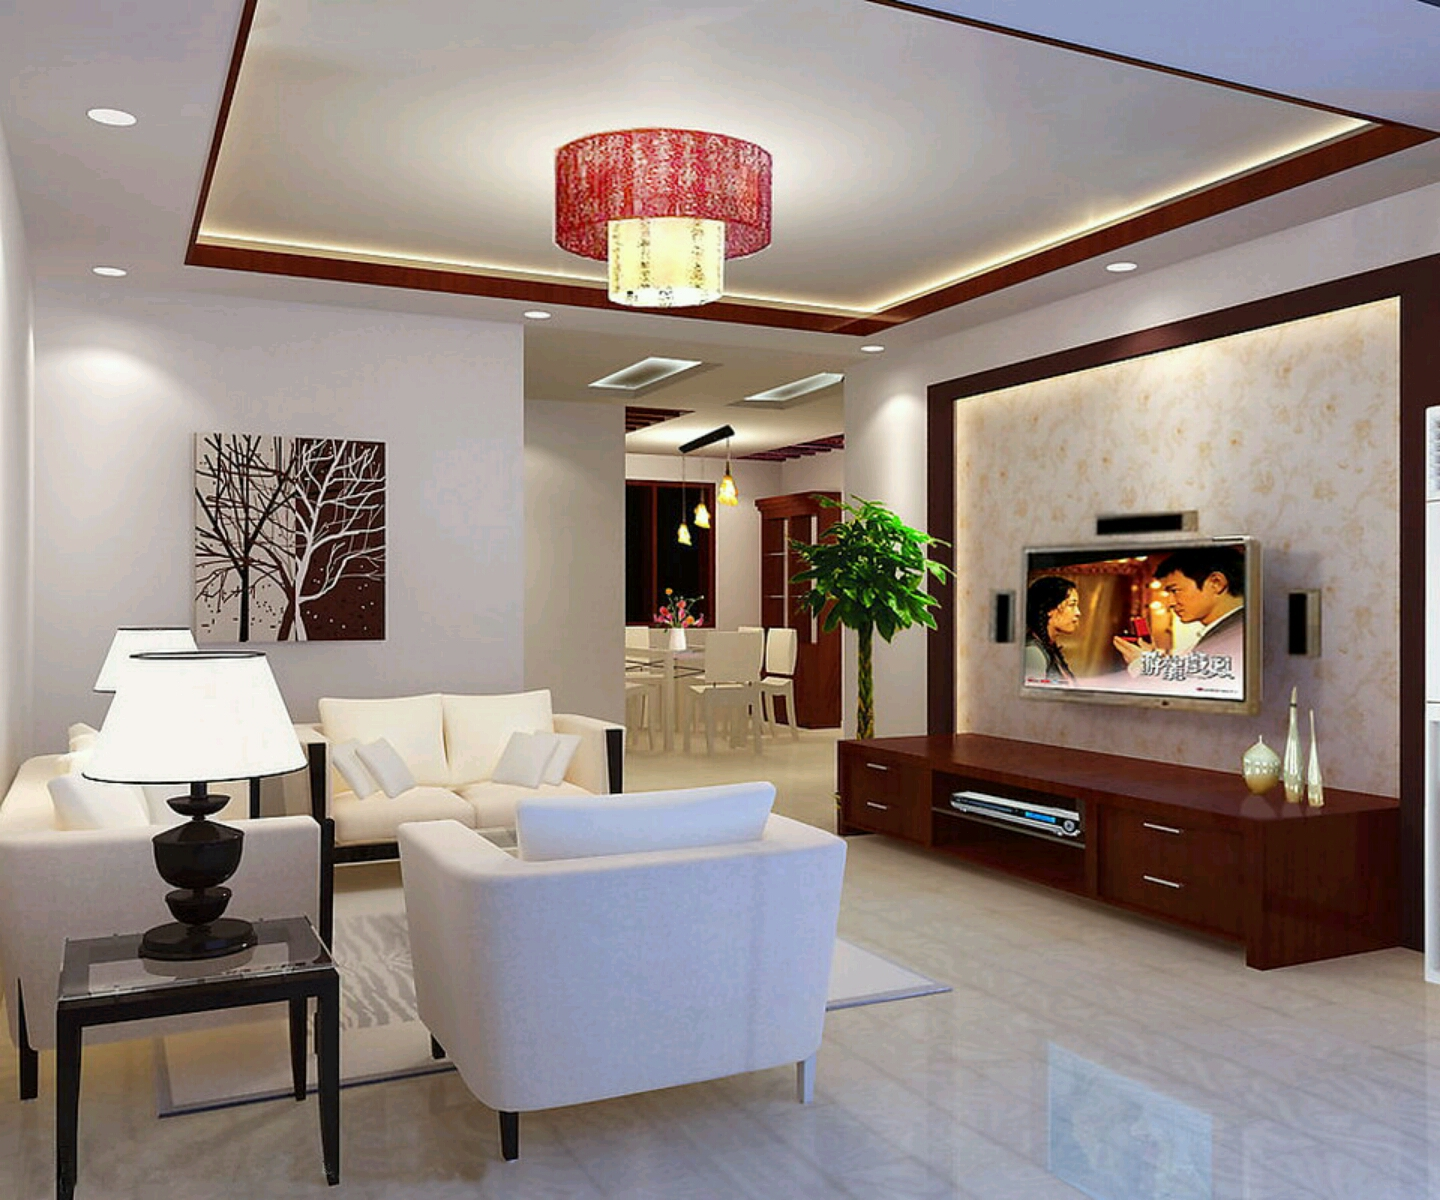 Modern interior decoration living rooms ceiling designs for Modern home interior ideas